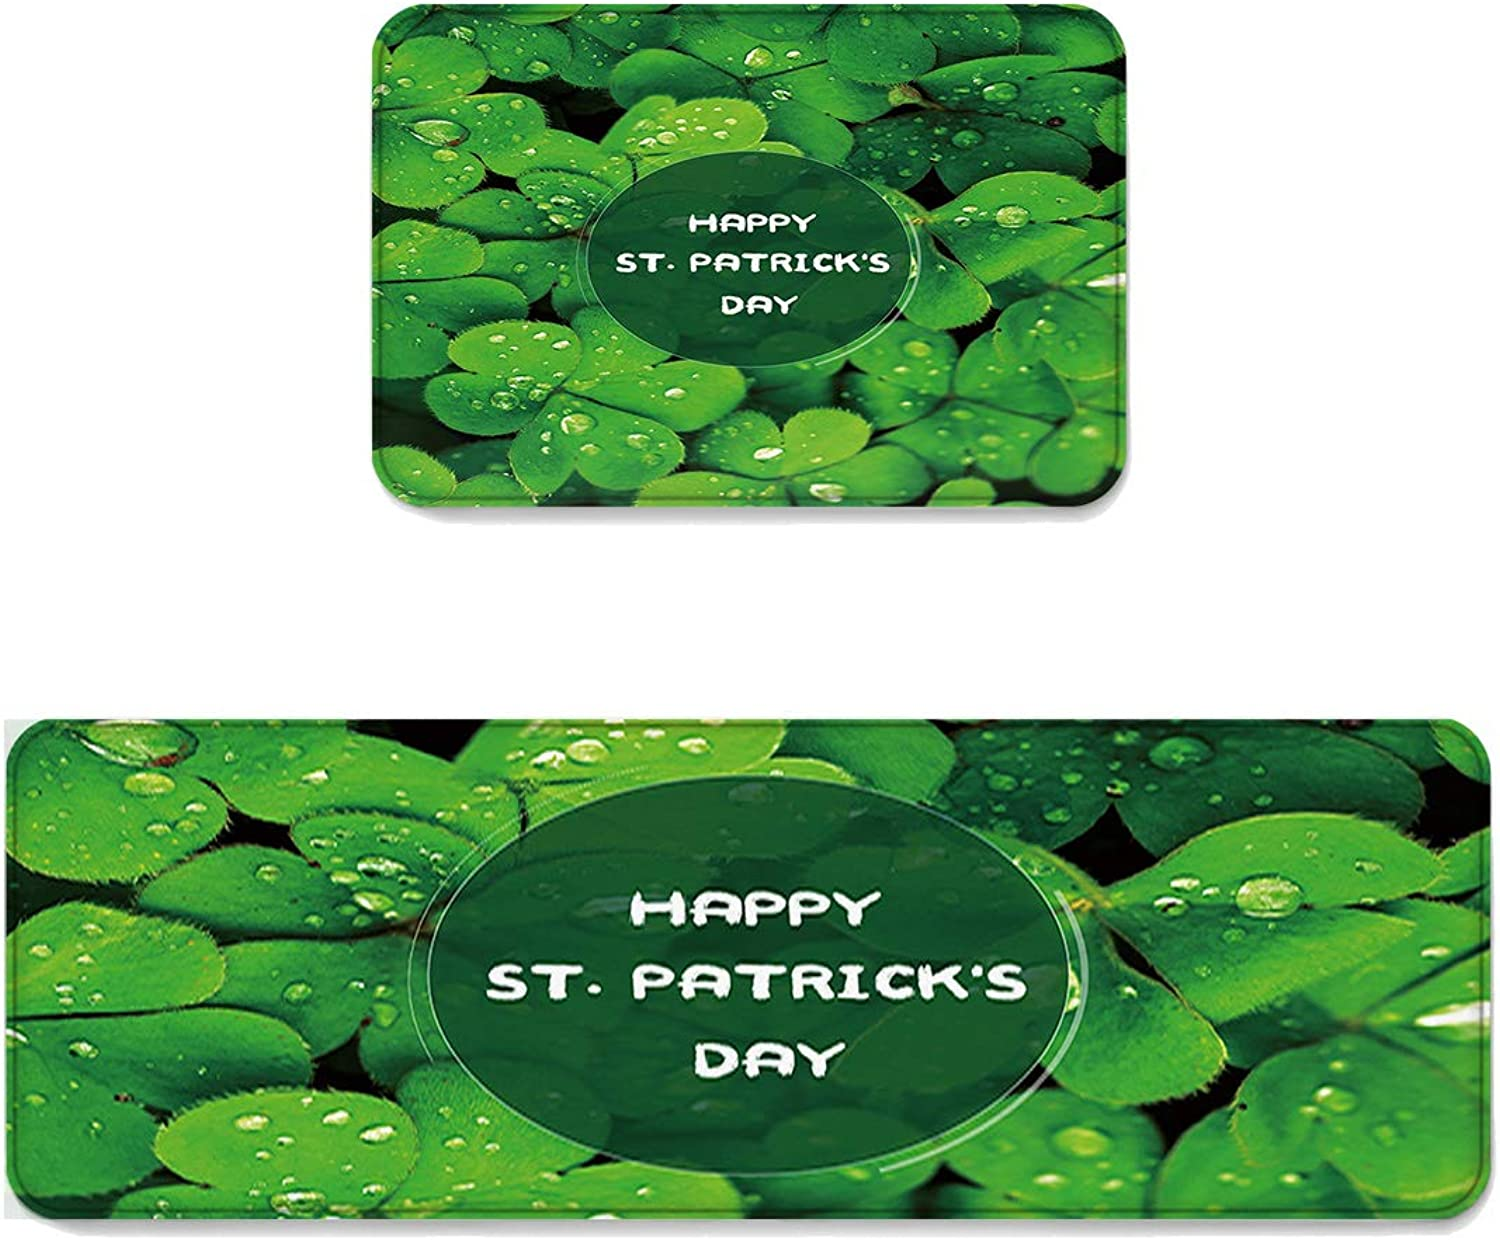 Kitchen Rug Sets 2 Piece Floor Mats Non-Slip Rubber Backing Area Rugs Happy St Patrick's Day Dew on The Shamrock Doormat Washable Carpet Inside Door Mat Pad Sets (19.7  x 31.5 +19.7  x 47.2 )